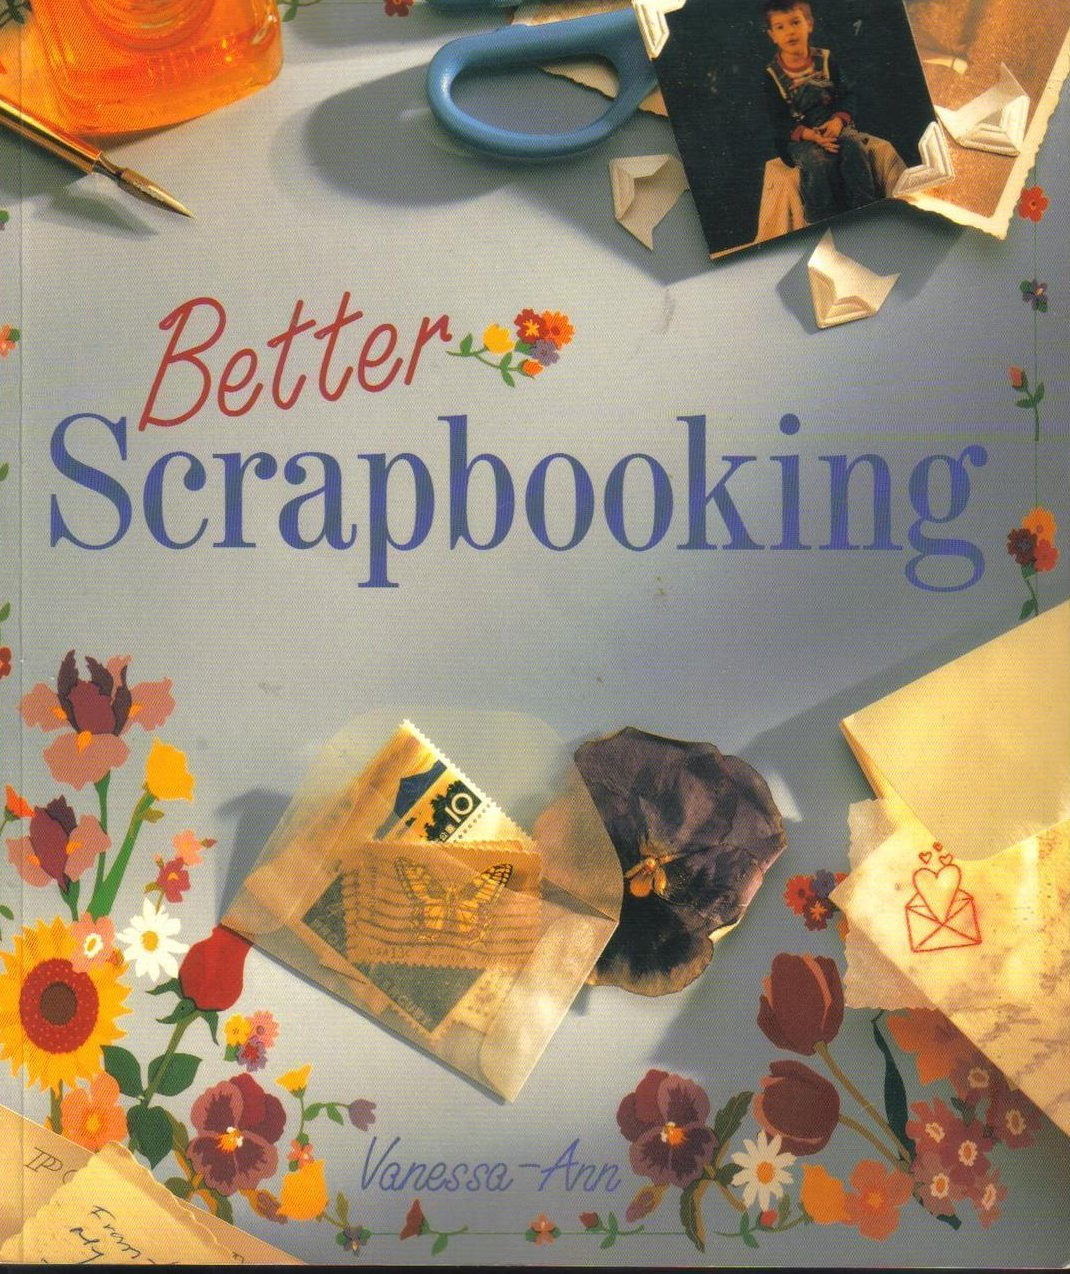 Better Scrapbooking Vanessa-Ann Book Crafts